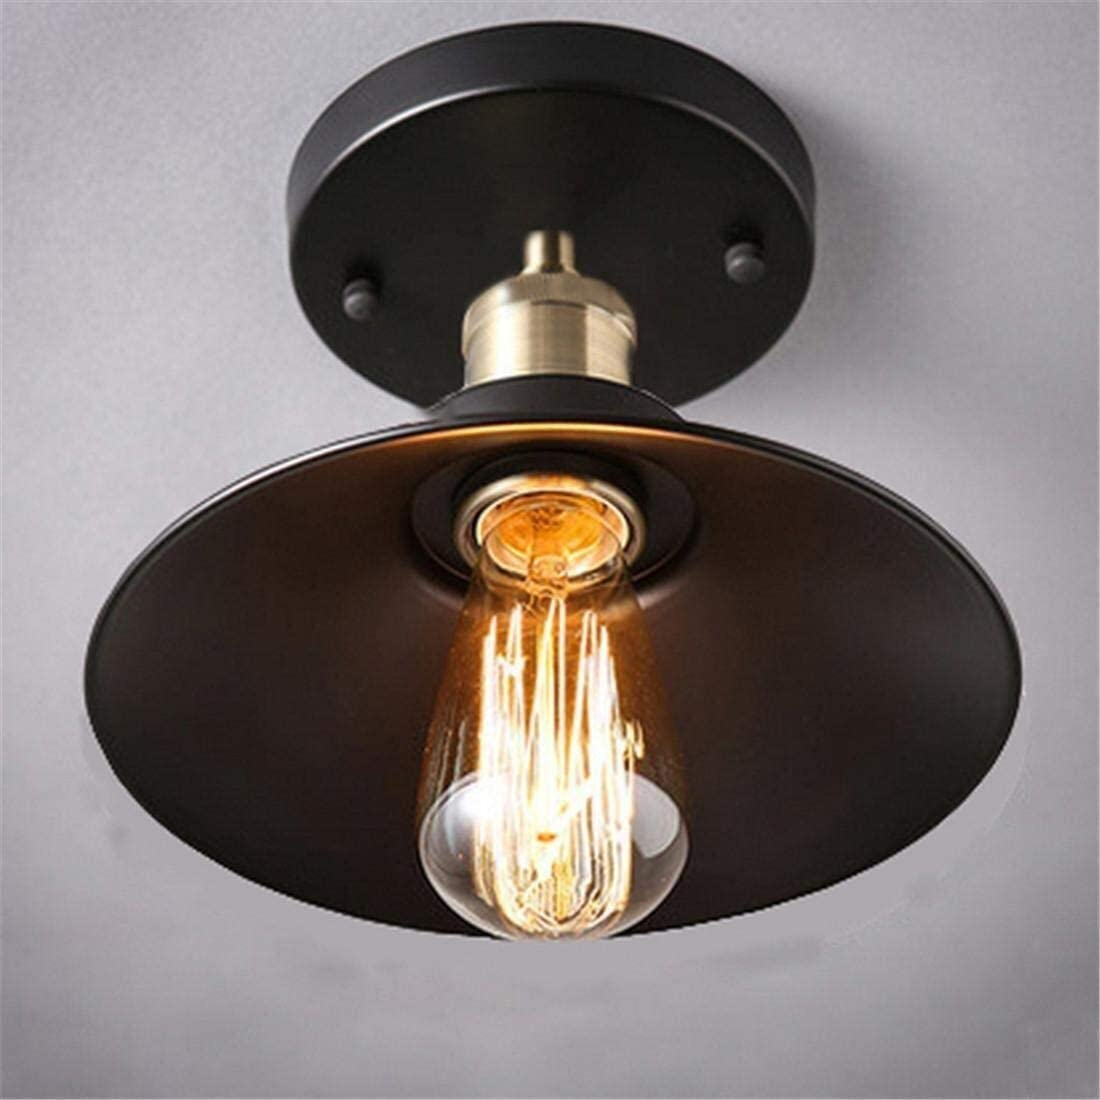 Hanging Light Pendant Lighting American Special price for a limited time Retro Pastor Round Rural Cheap SALE Start